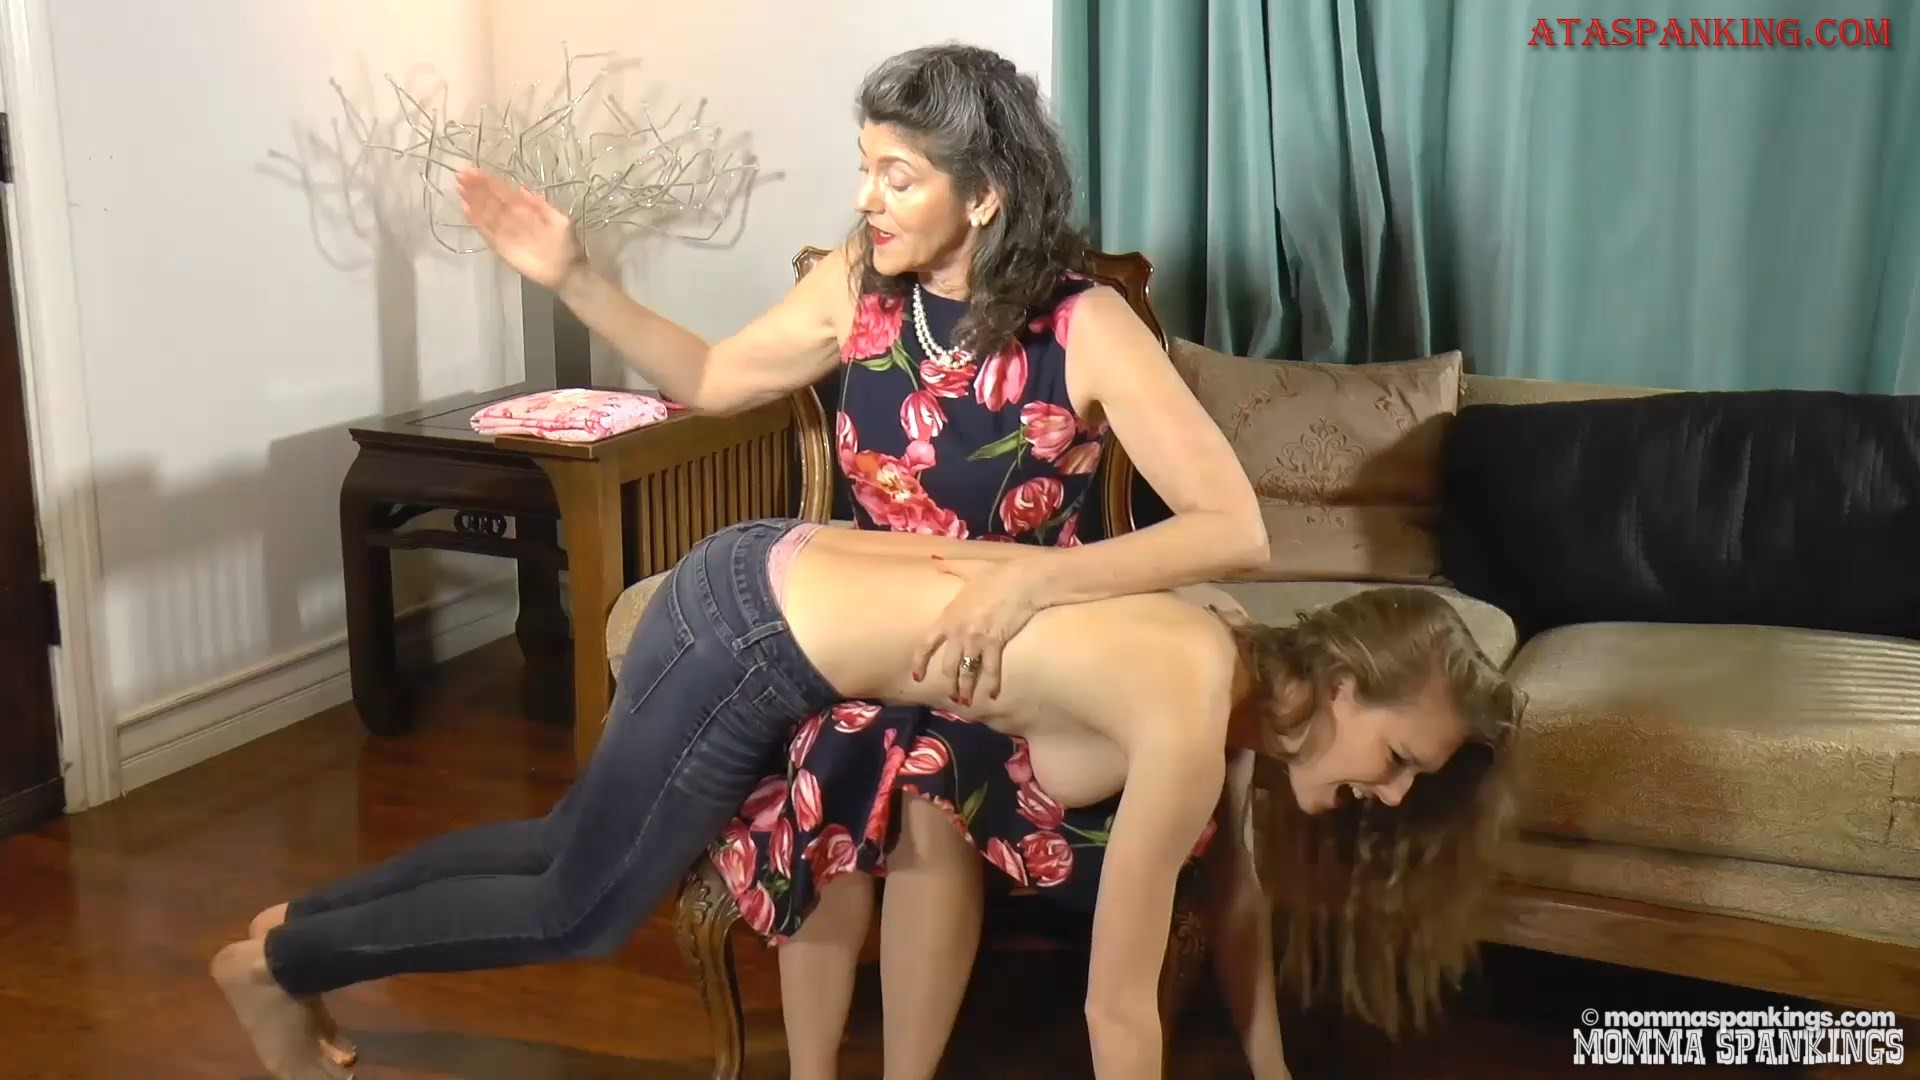 Naked Spanked and Diapered – Mommaspankings